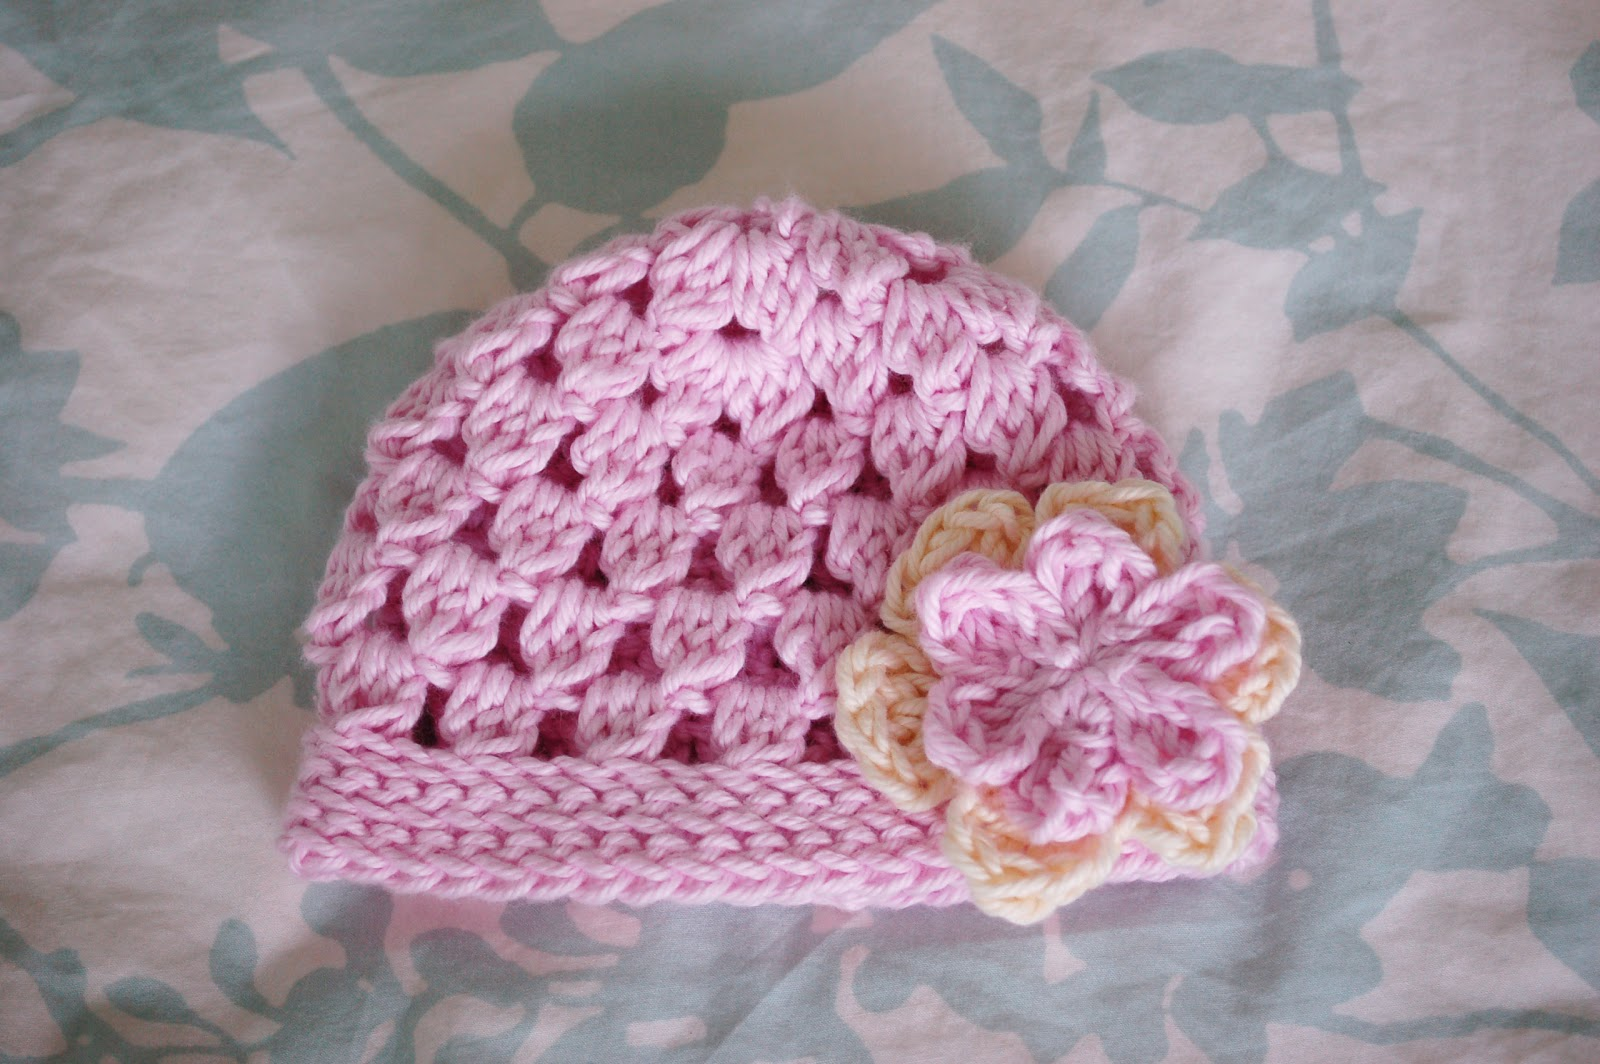 Crochet Baby Bonnet Pattern Cool Design Inspiration